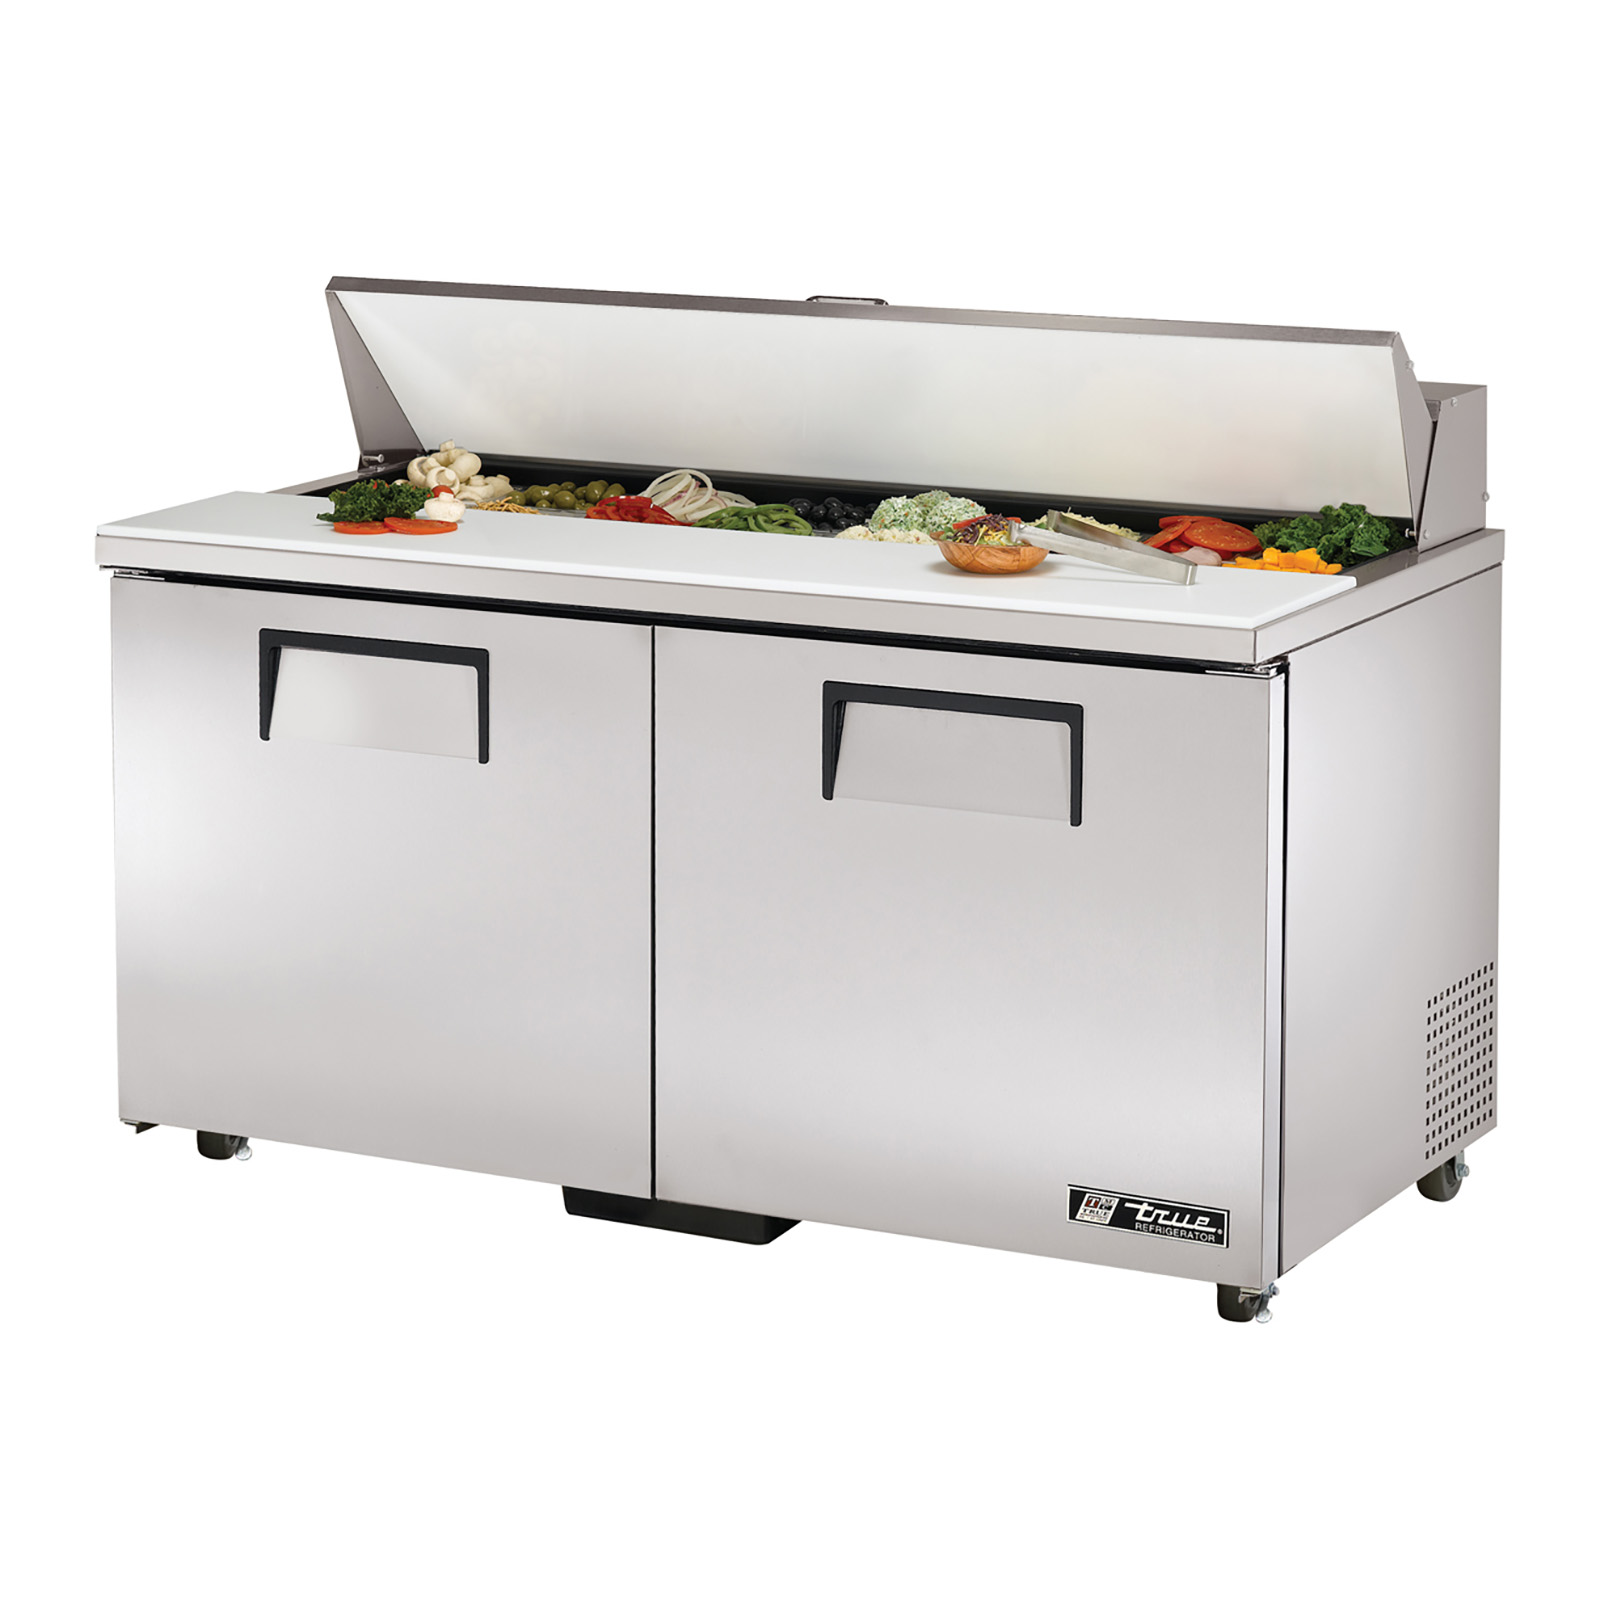 TSSU-60-16-ADA True - ADA Compliant Sandwich/Salad Unit (16) 1/6 size (4